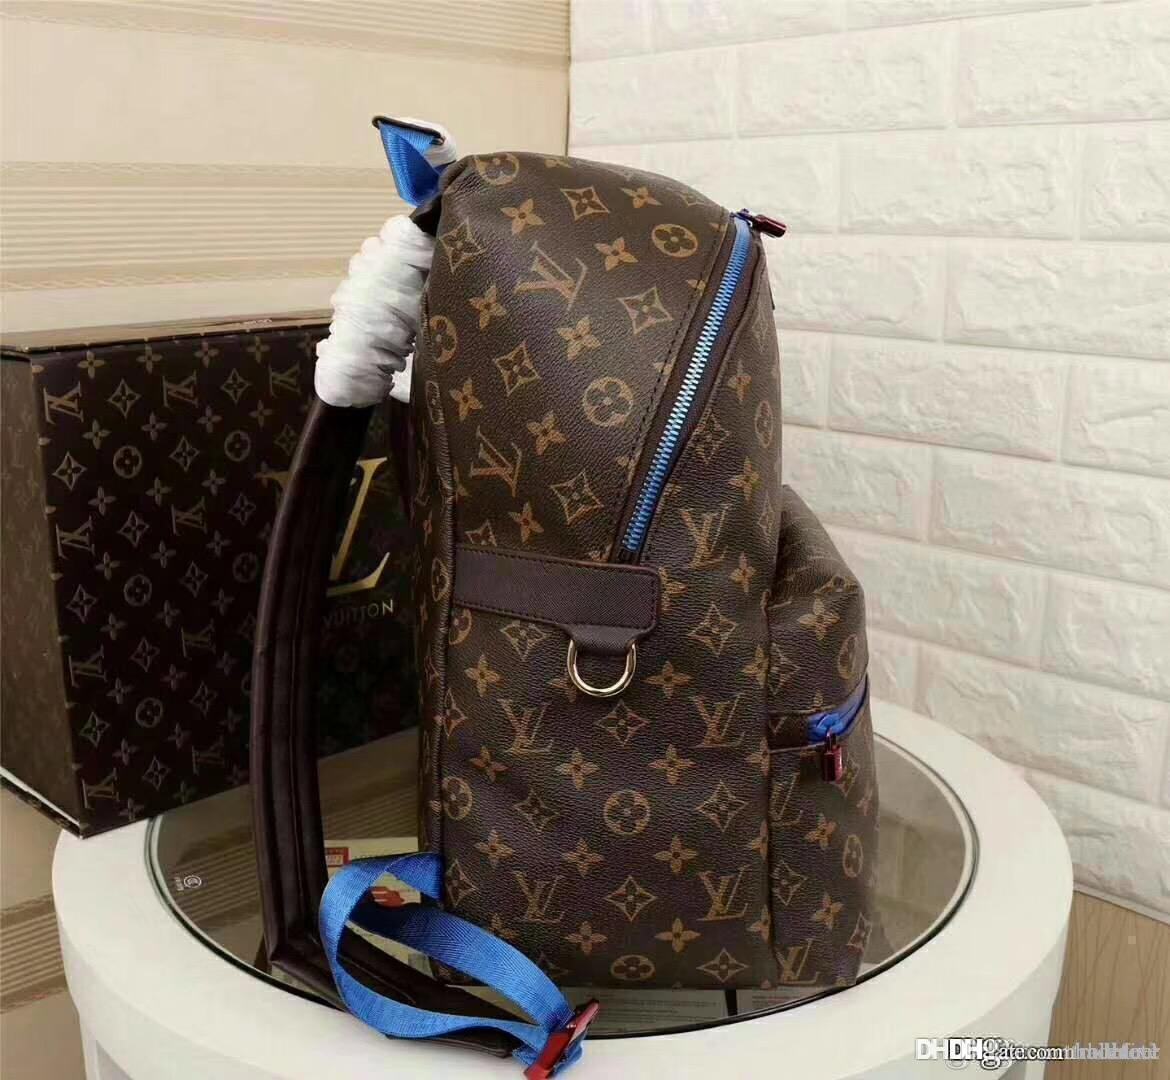 57d9e2339f6f LOUIS VUITTON Supreme Women DICOVERY Backpack 100% Real Leather Travel Bags  MICHAEv88 KOR houlder Bags For Men Women Tote atchel Clutch ac L I MK AJ  GUCCI ...